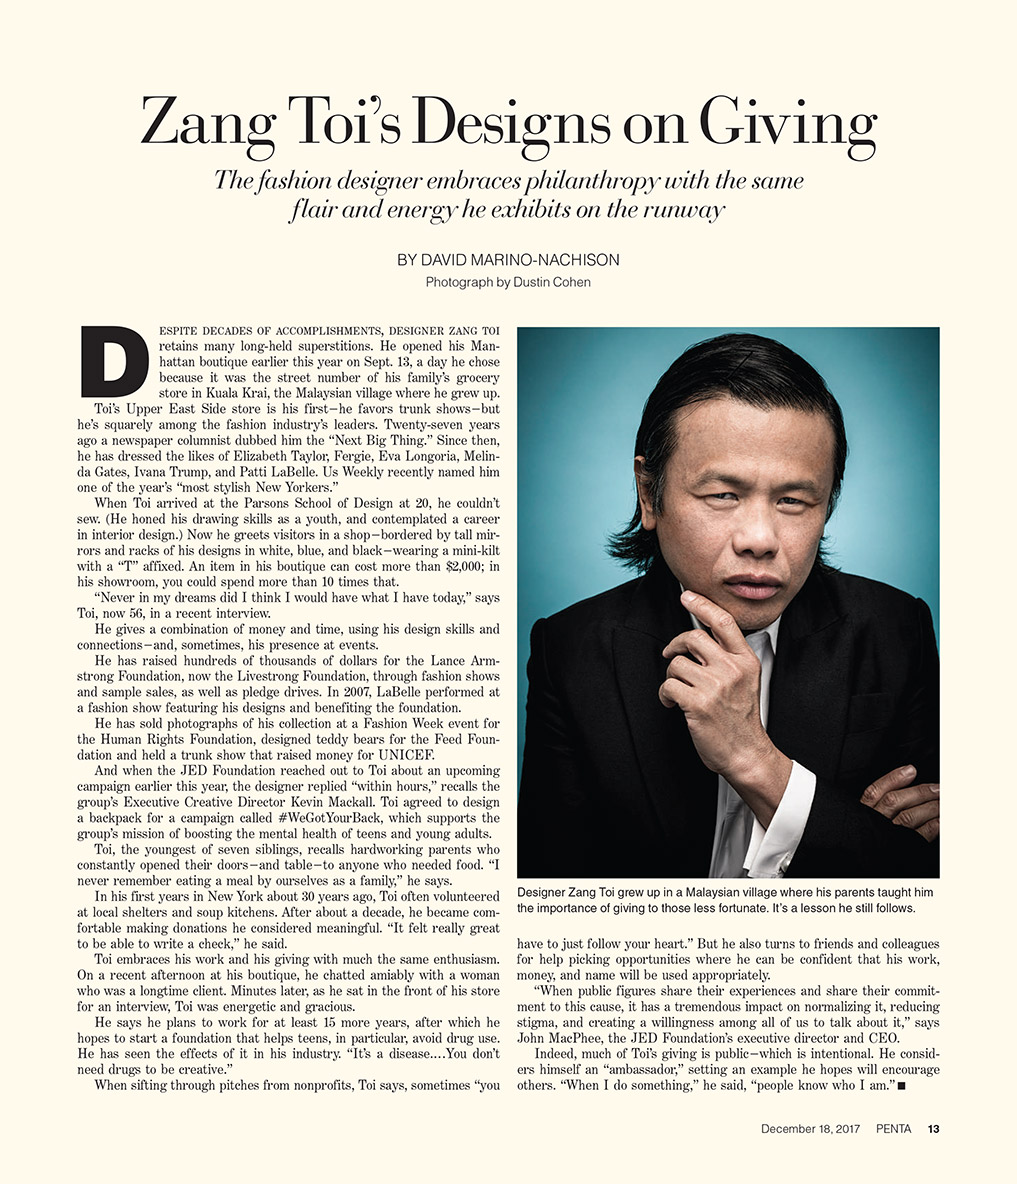 barrons_zangtoi